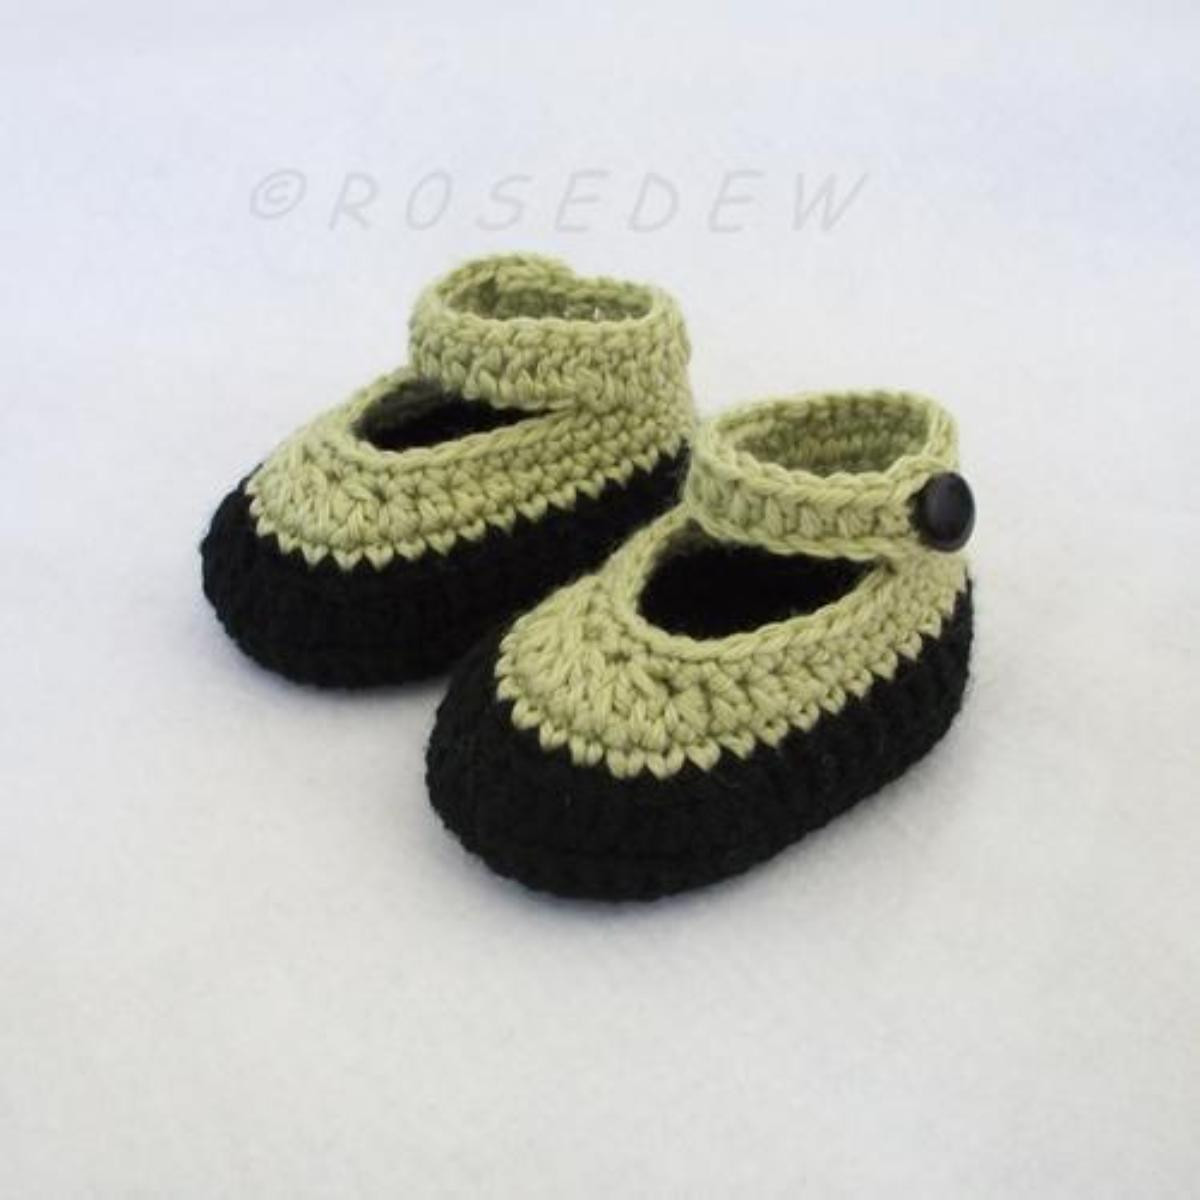 Baby Booties Crochet Pattern Elegant Crochet Baby Booties Patterns for Sweet Little Feet Of Top 49 Pictures Baby Booties Crochet Pattern